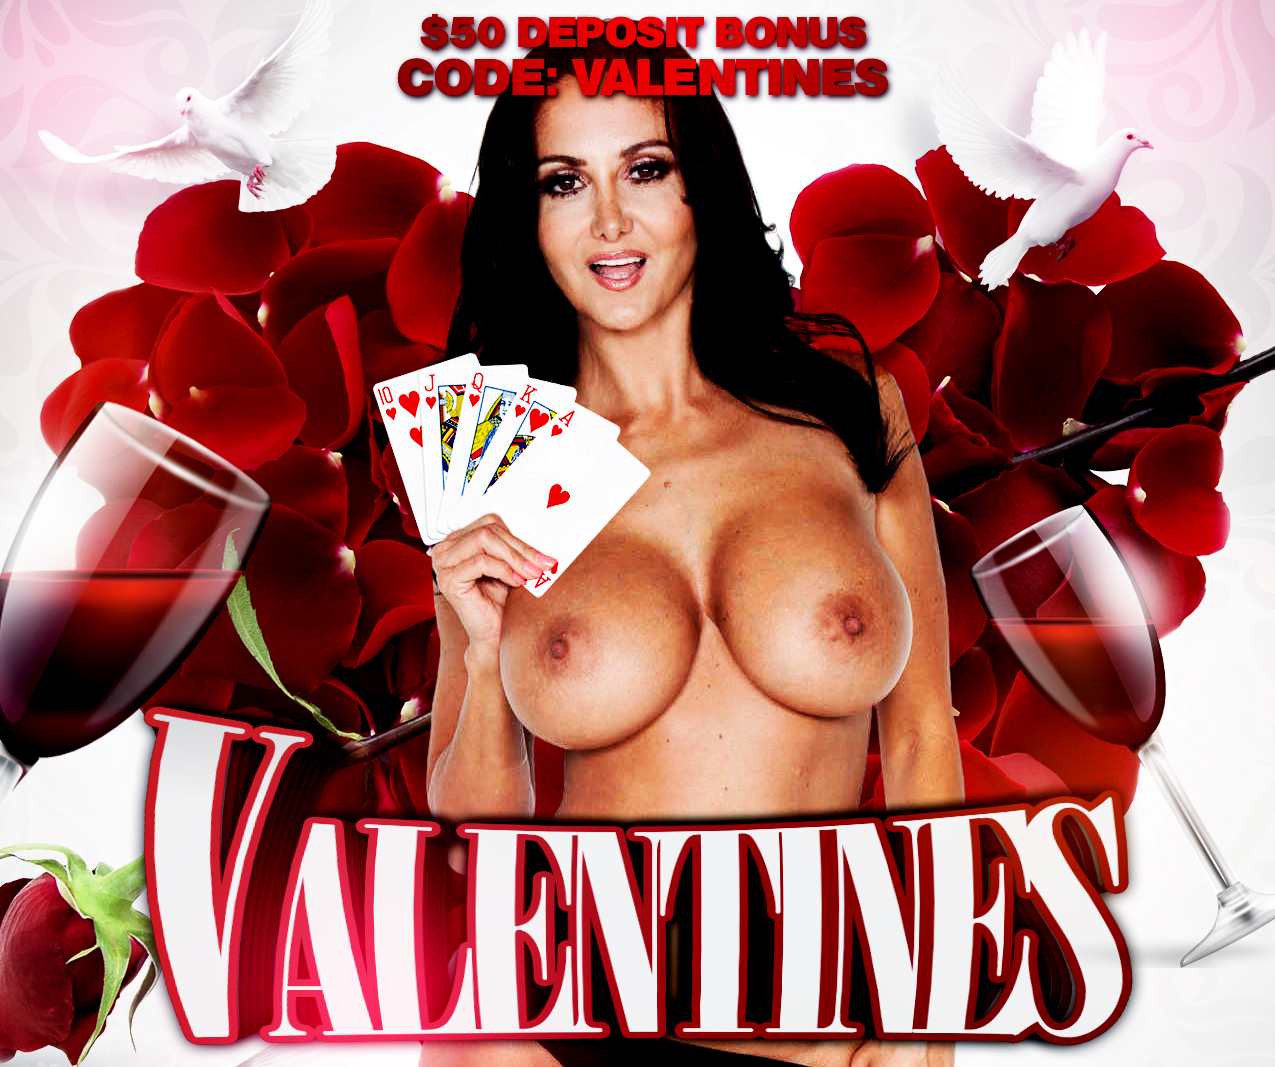 valentines-day-coupon-get-a-100-deposit-bonus-of-up-to-50-on-any-casino-games-with-pornhubcasino